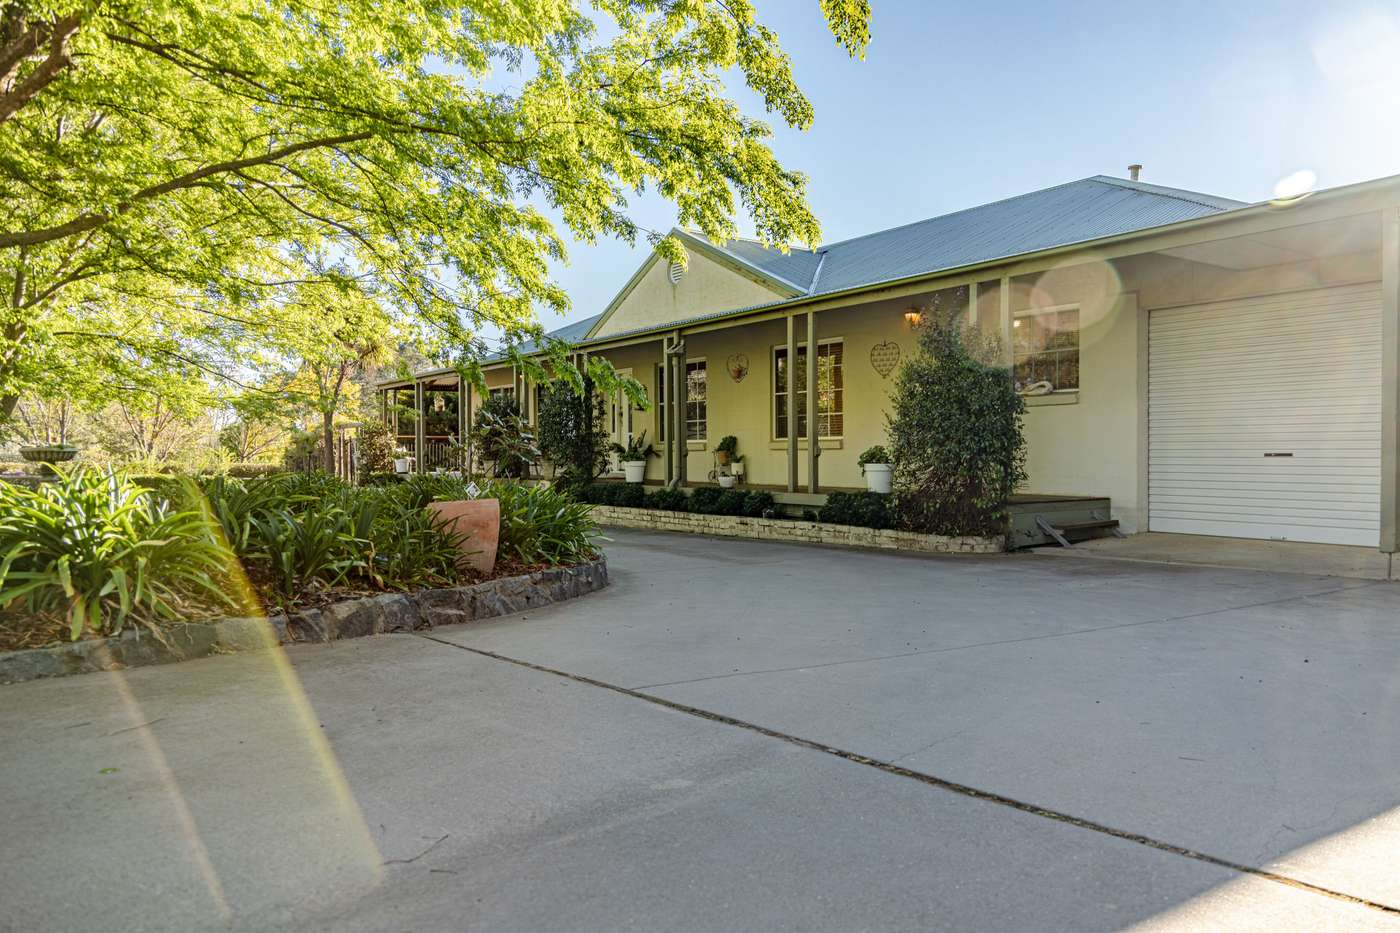 Main view of Homely house listing, 15 West Street, Murrumbateman, NSW 2582